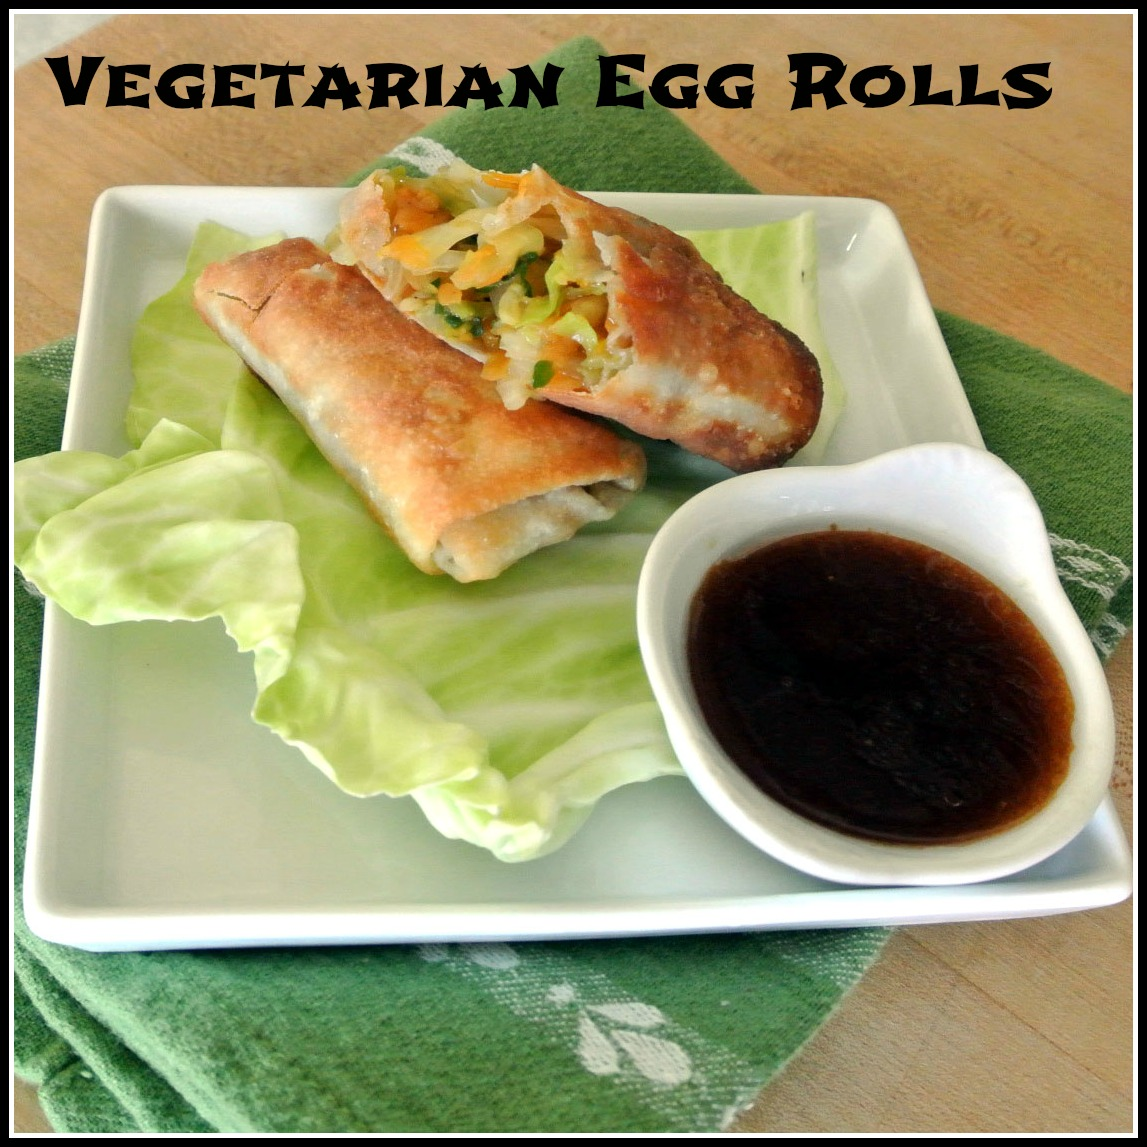 Crunchy Vegetarian Thai Egg Roll Recipe - The Spruce